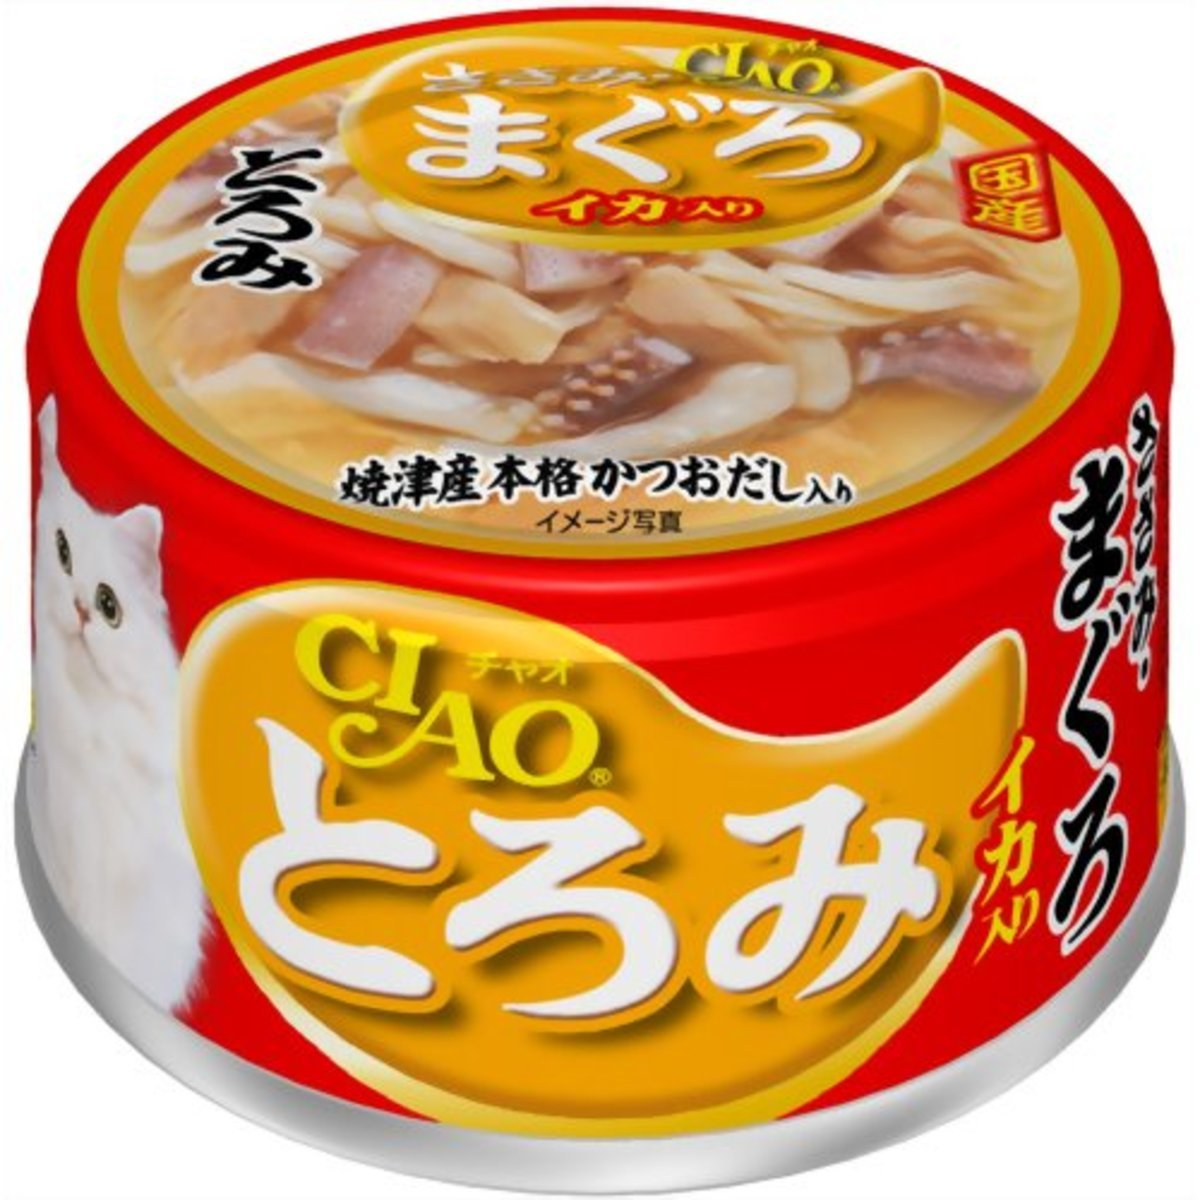 INABA CIAO 雞肉金槍魚魷魚 A-53 80g